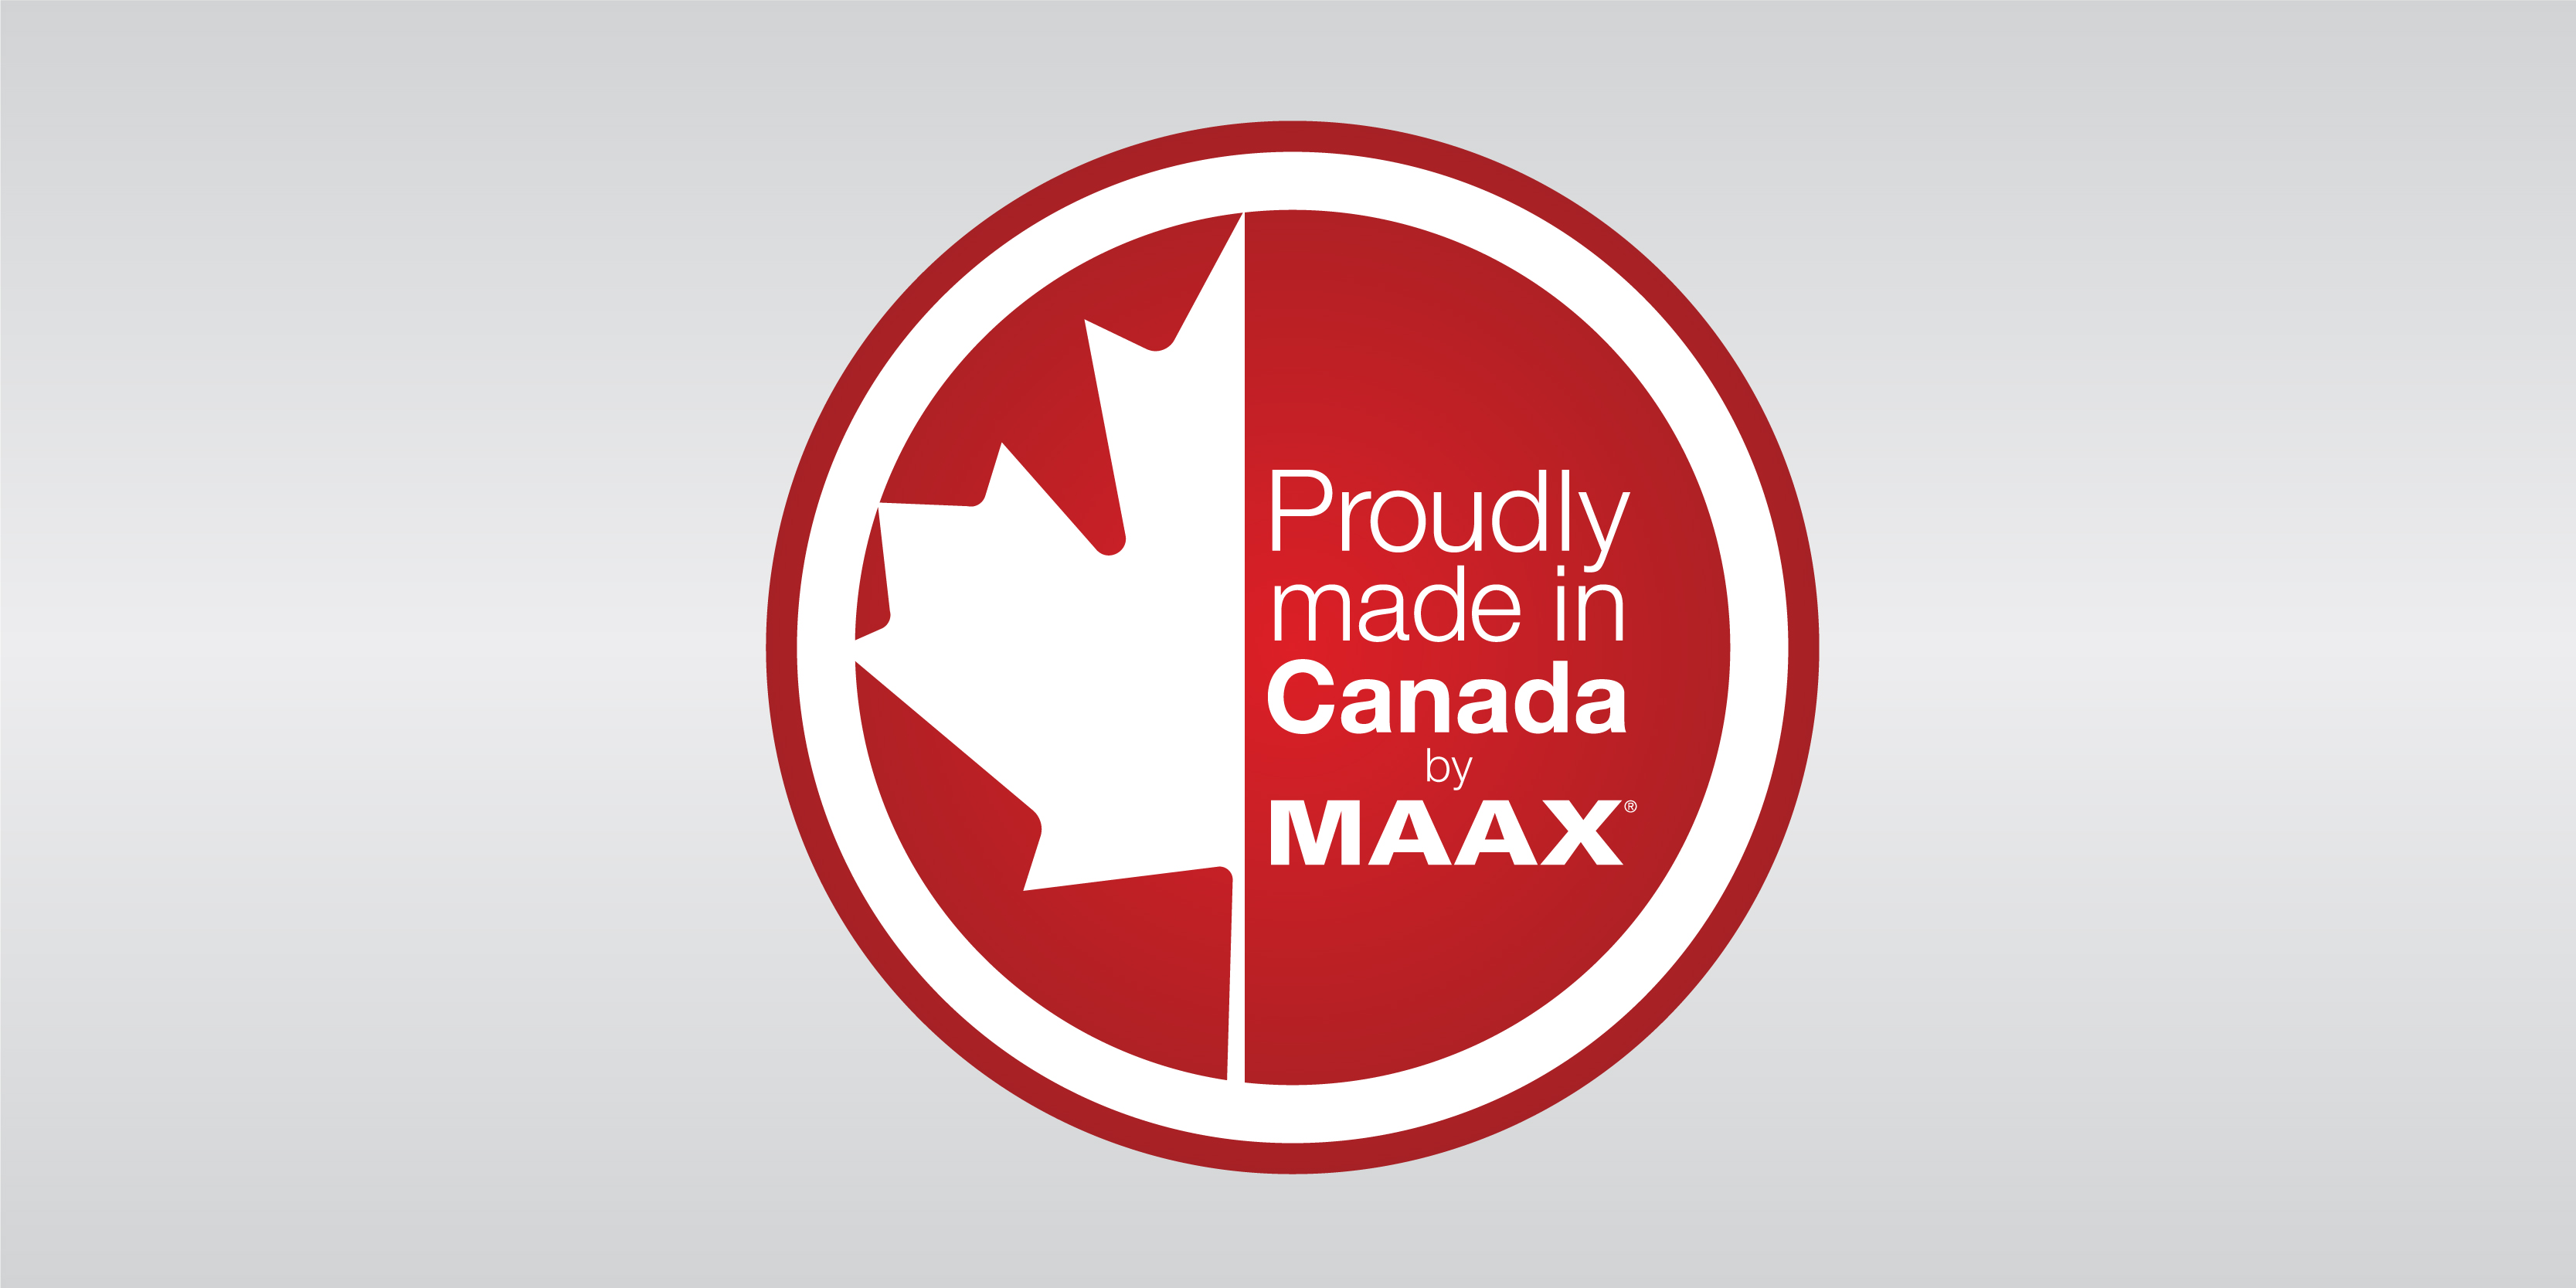 Proudly made in Canada by MAAX